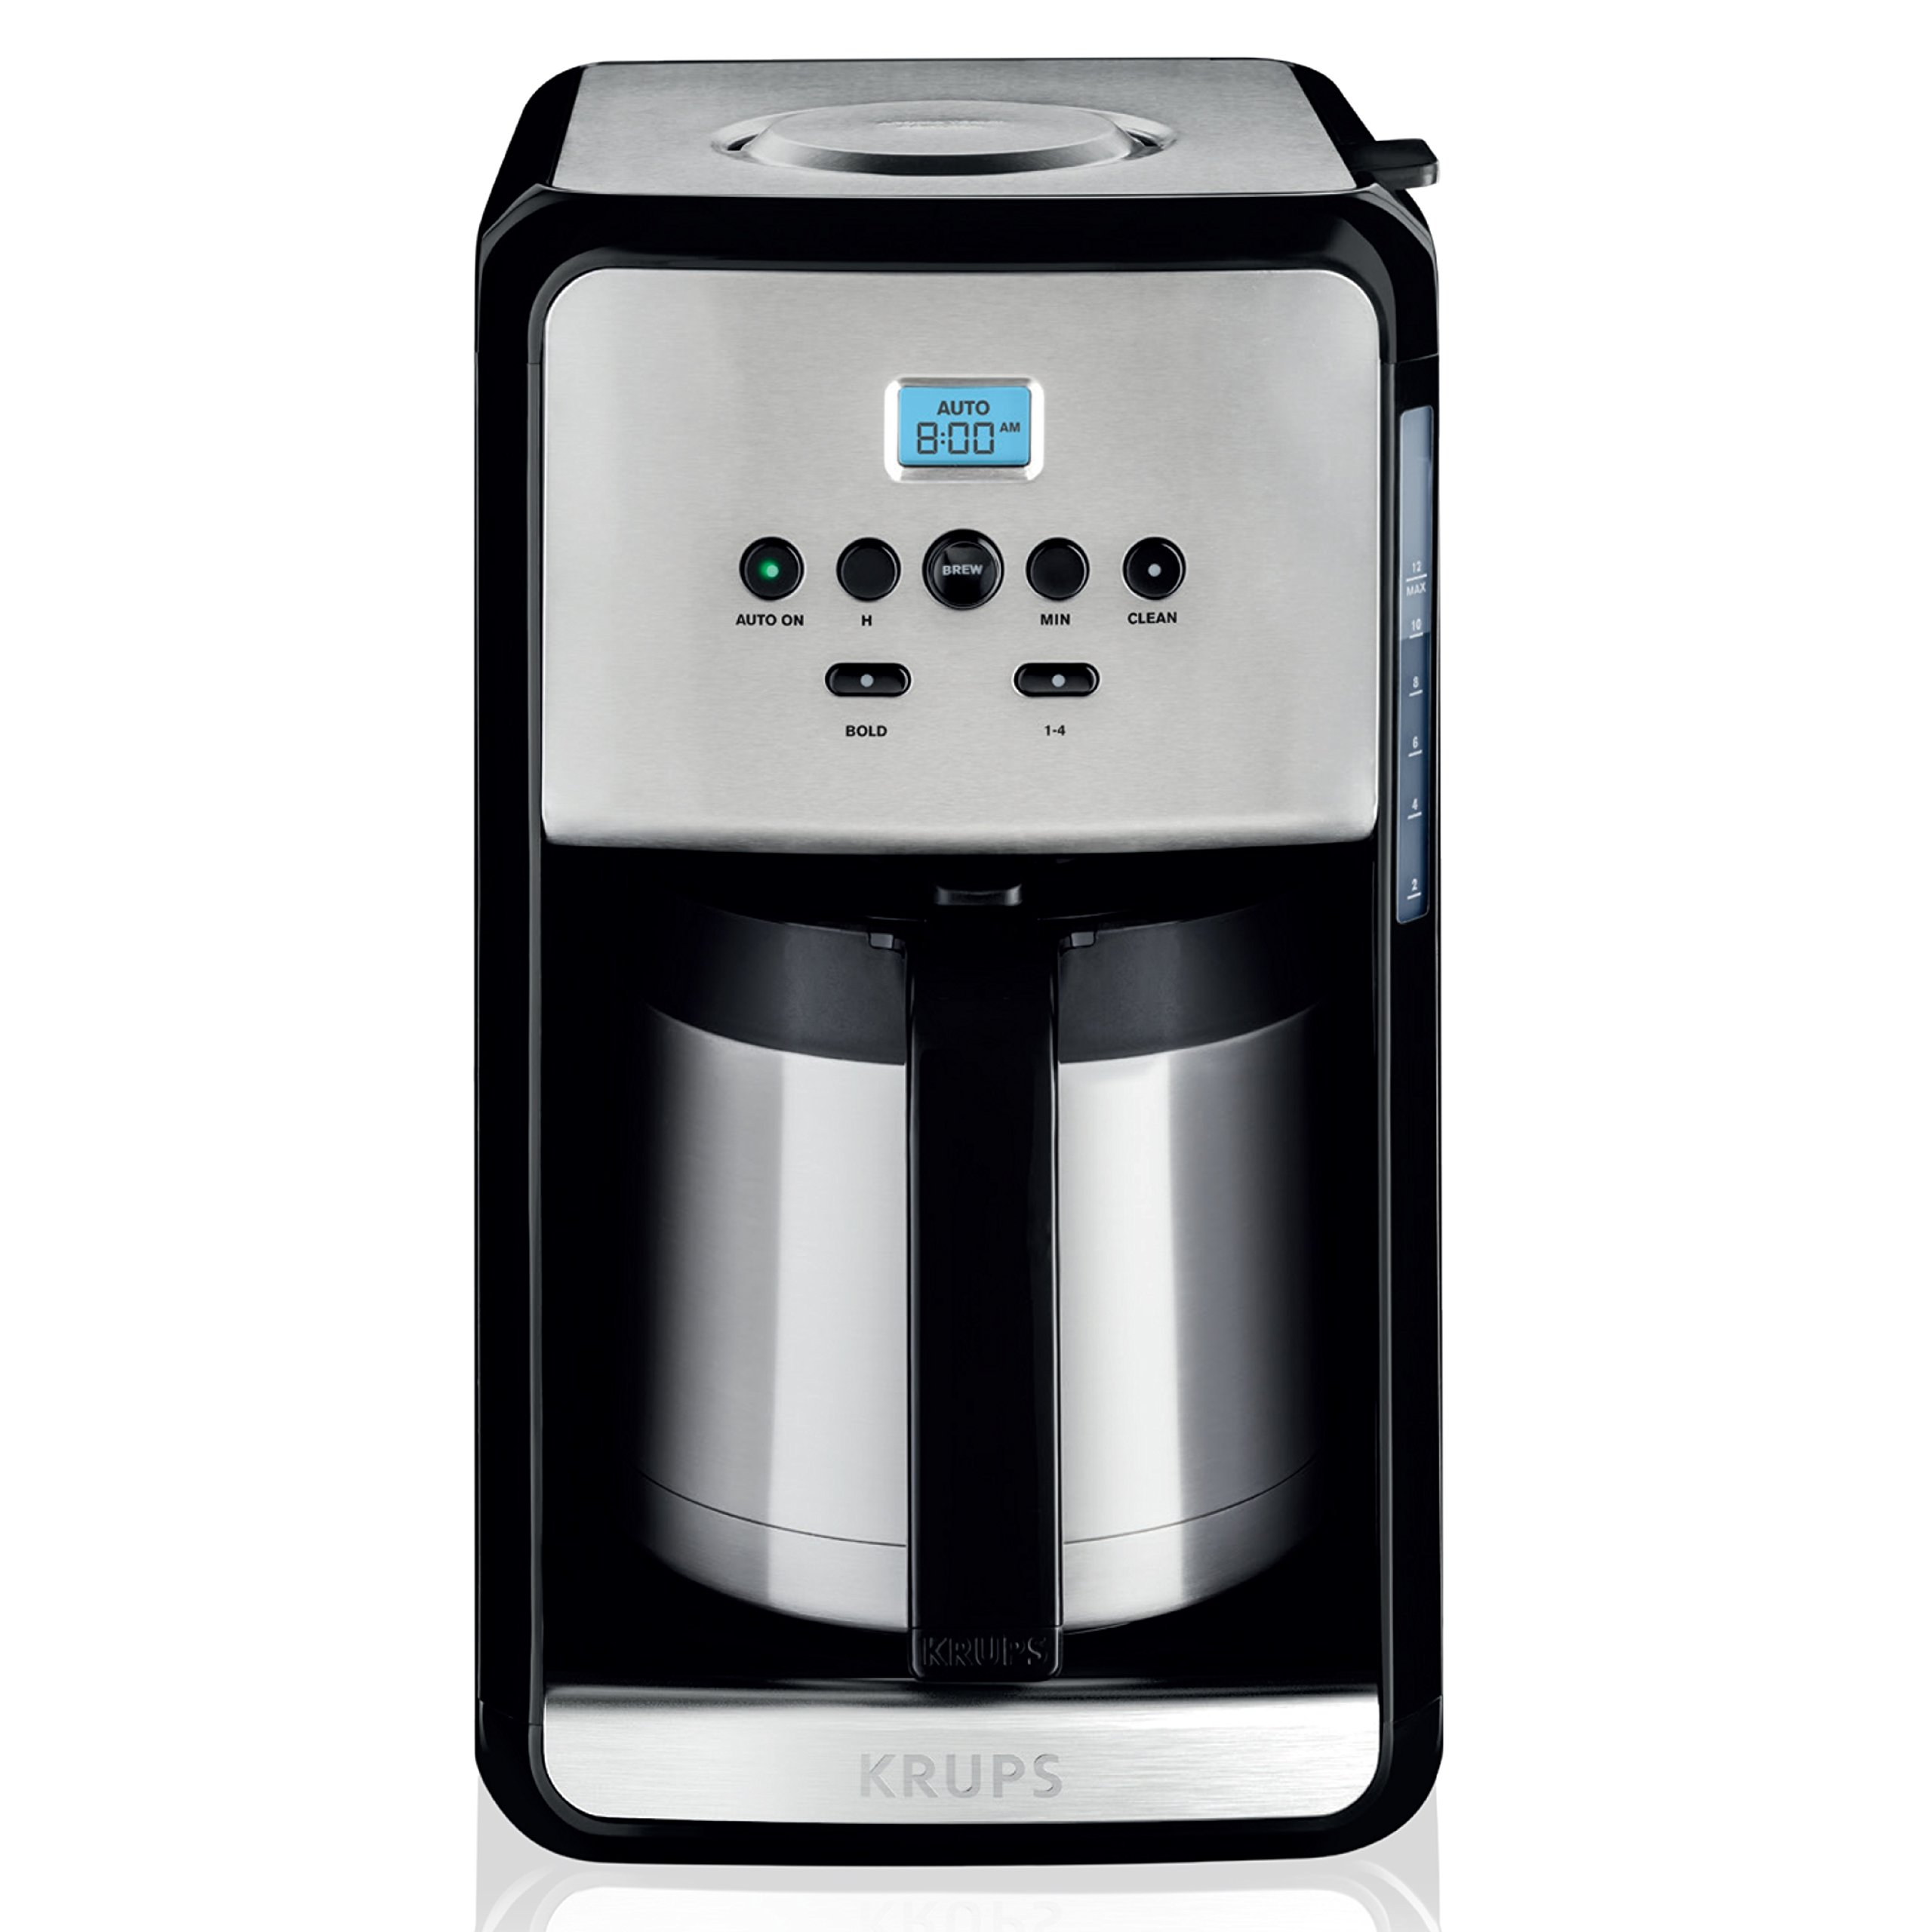 KRUPS ET3530 SAVOY Programmable Thermal, Gold Tone Filter Coffee Maker Machine with Bold and 1-4 Cup Function, 12-Cup, Stainless Steel Carafe (Stainless Steel)